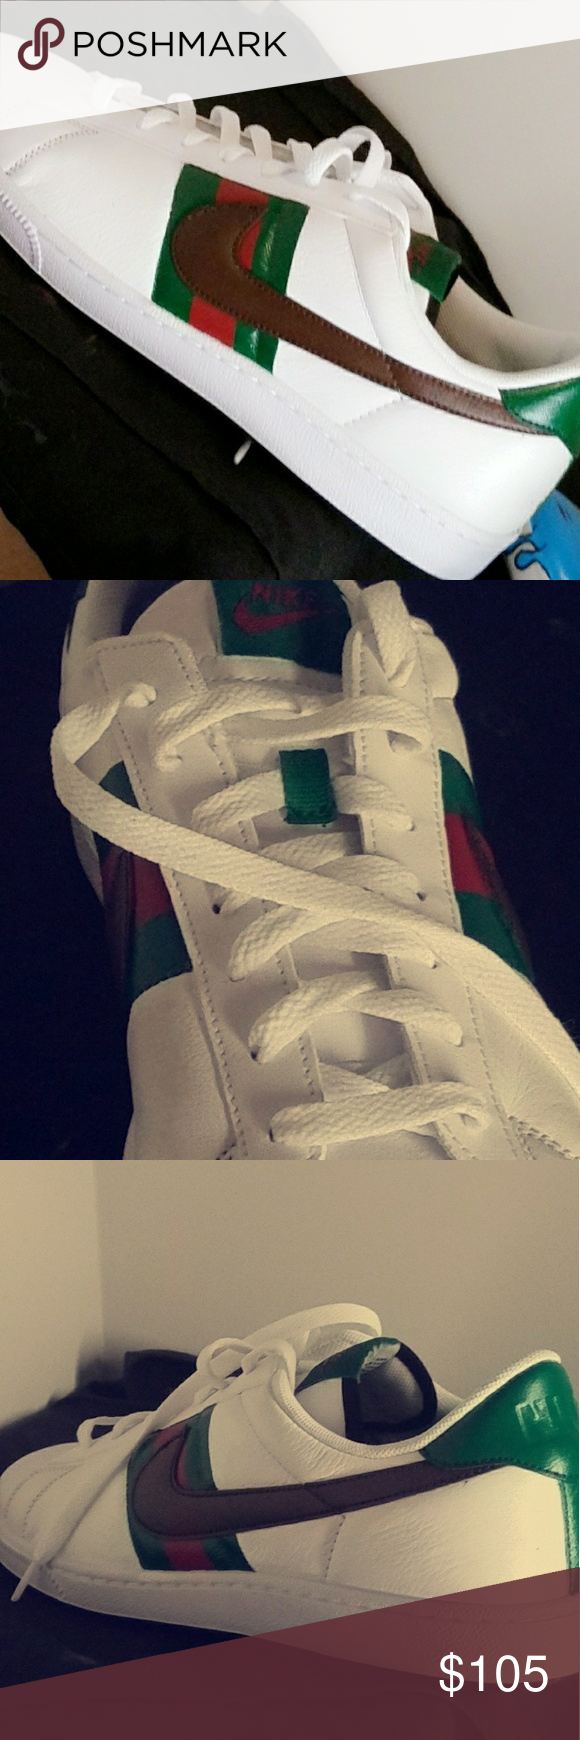 d4bbff61b8e Gucci ? nike custom men Nike gucci custom with leather paint brand new  never worn Gucci Shoes Sneakers